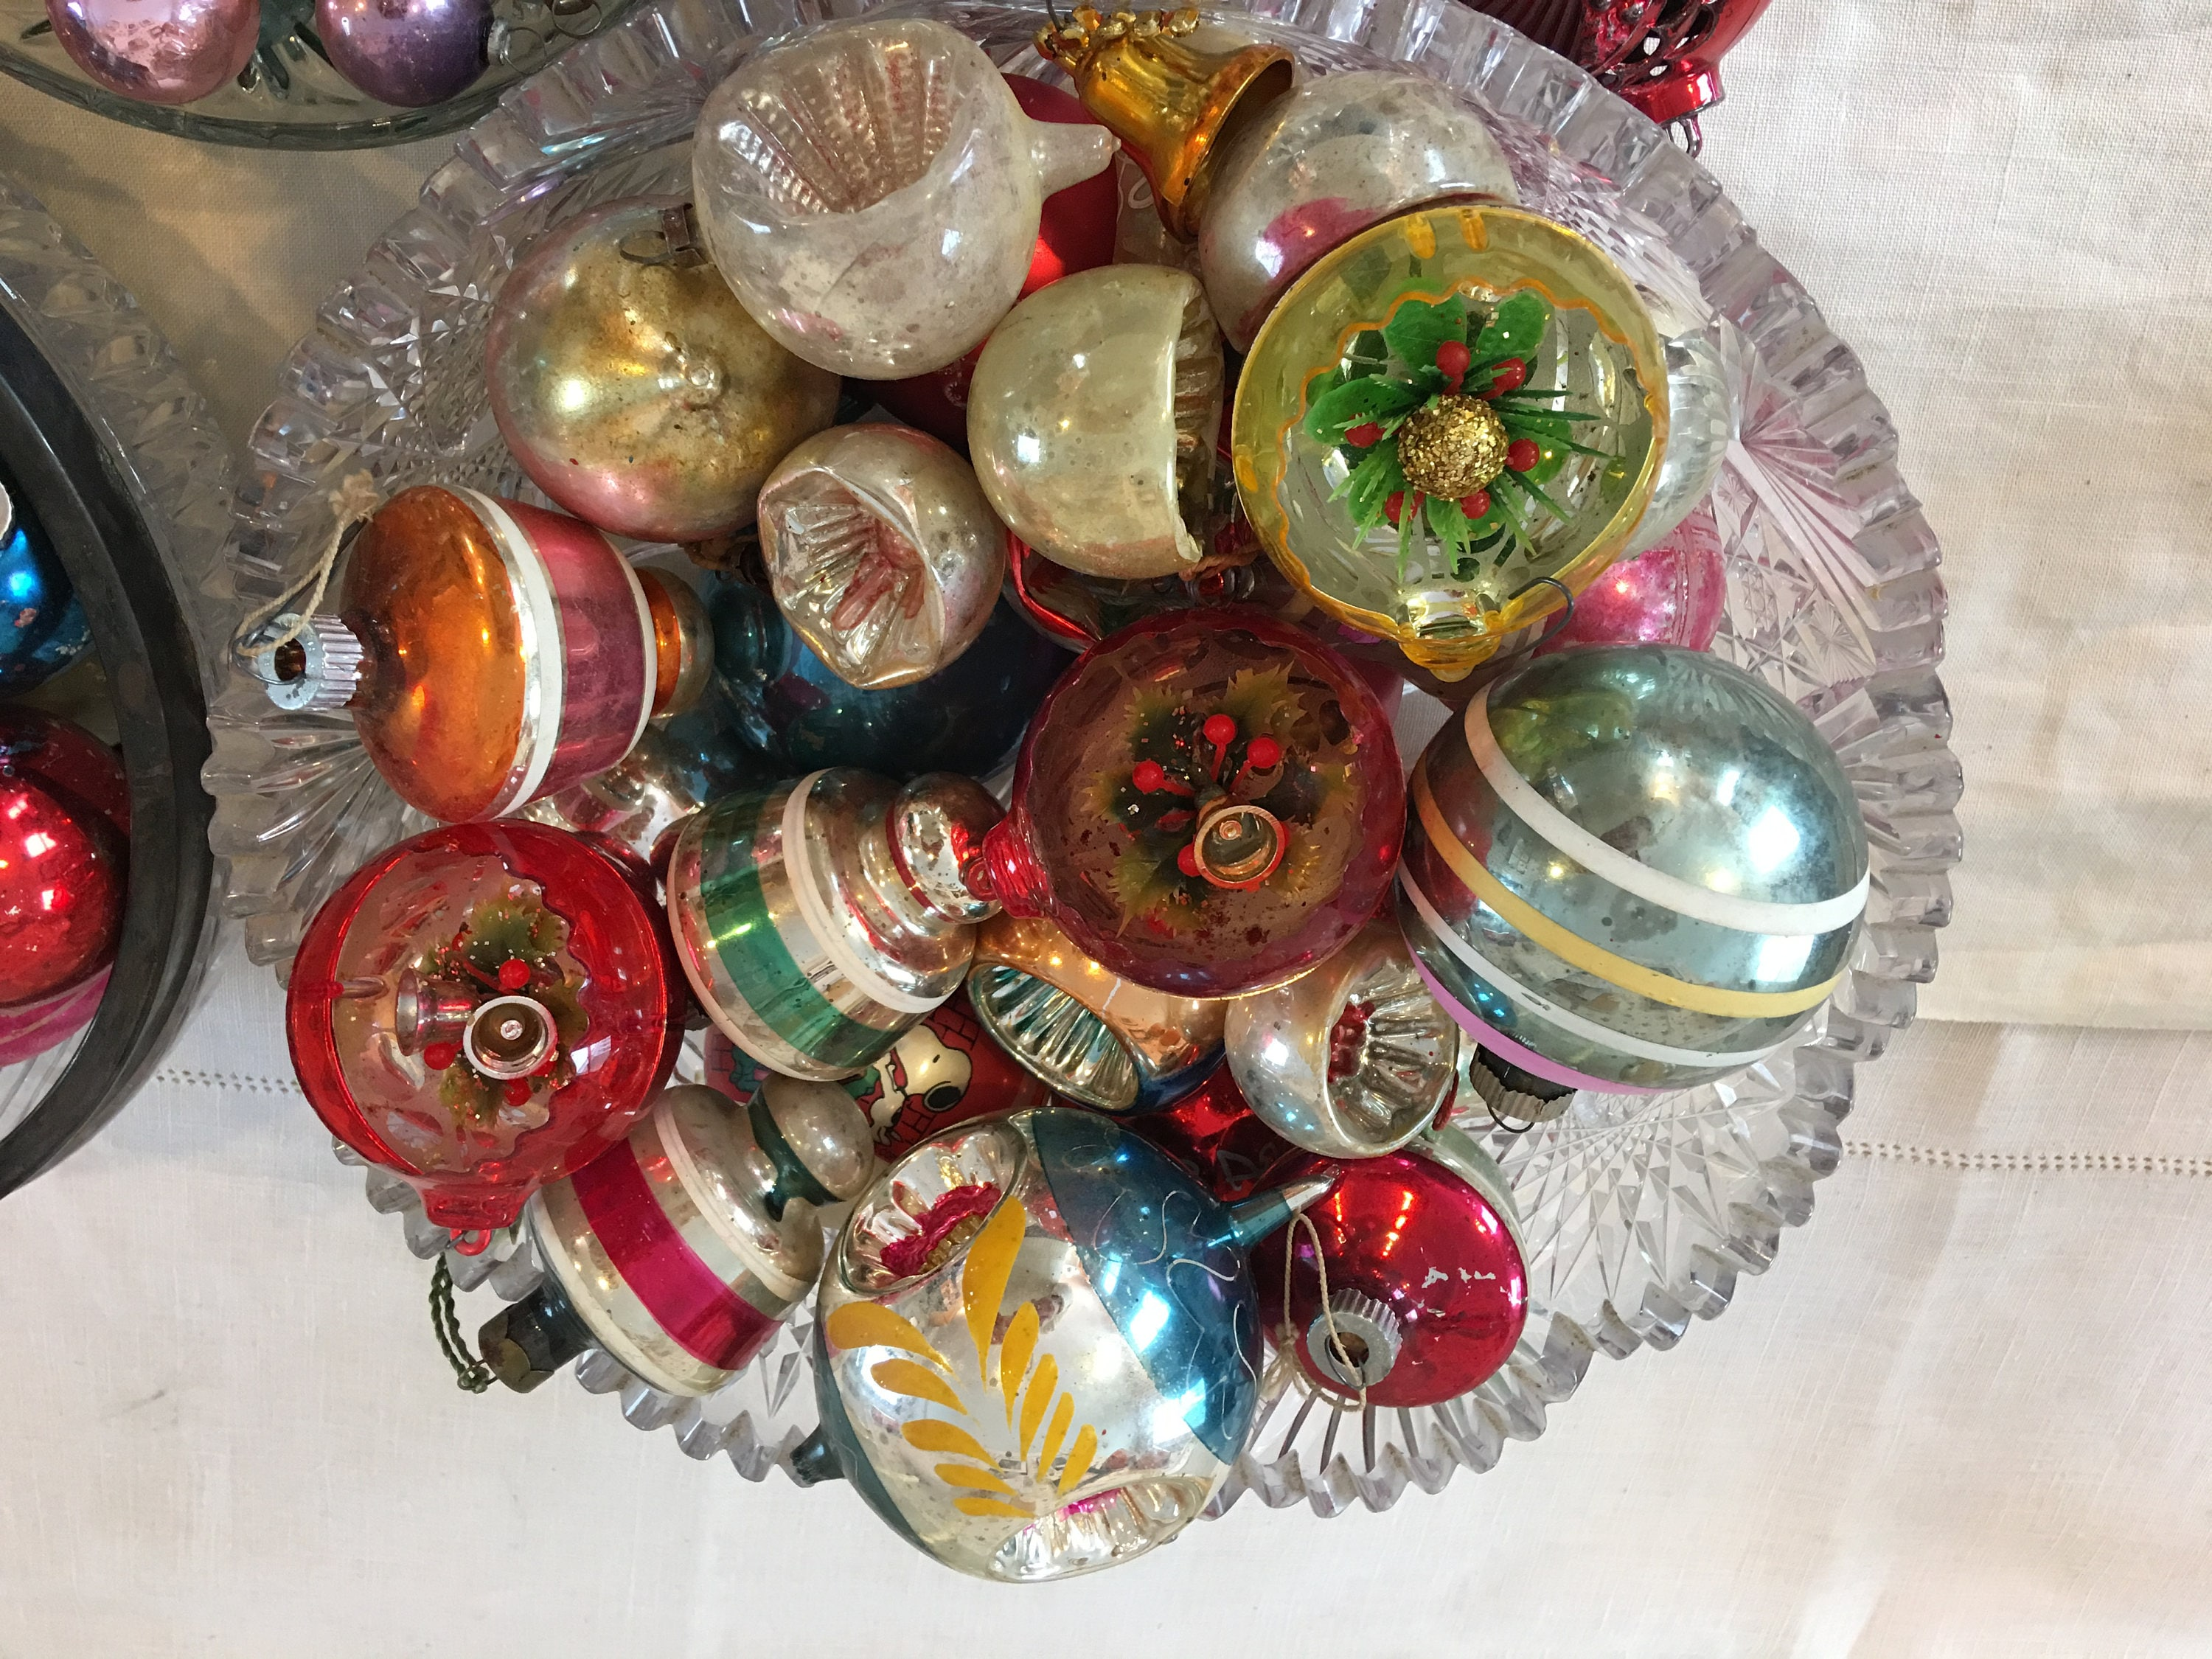 huge collection of mercury glass vintage plastic christmas tree ornaments 1950 mid century crackle glass bells 103 ornaments small med large